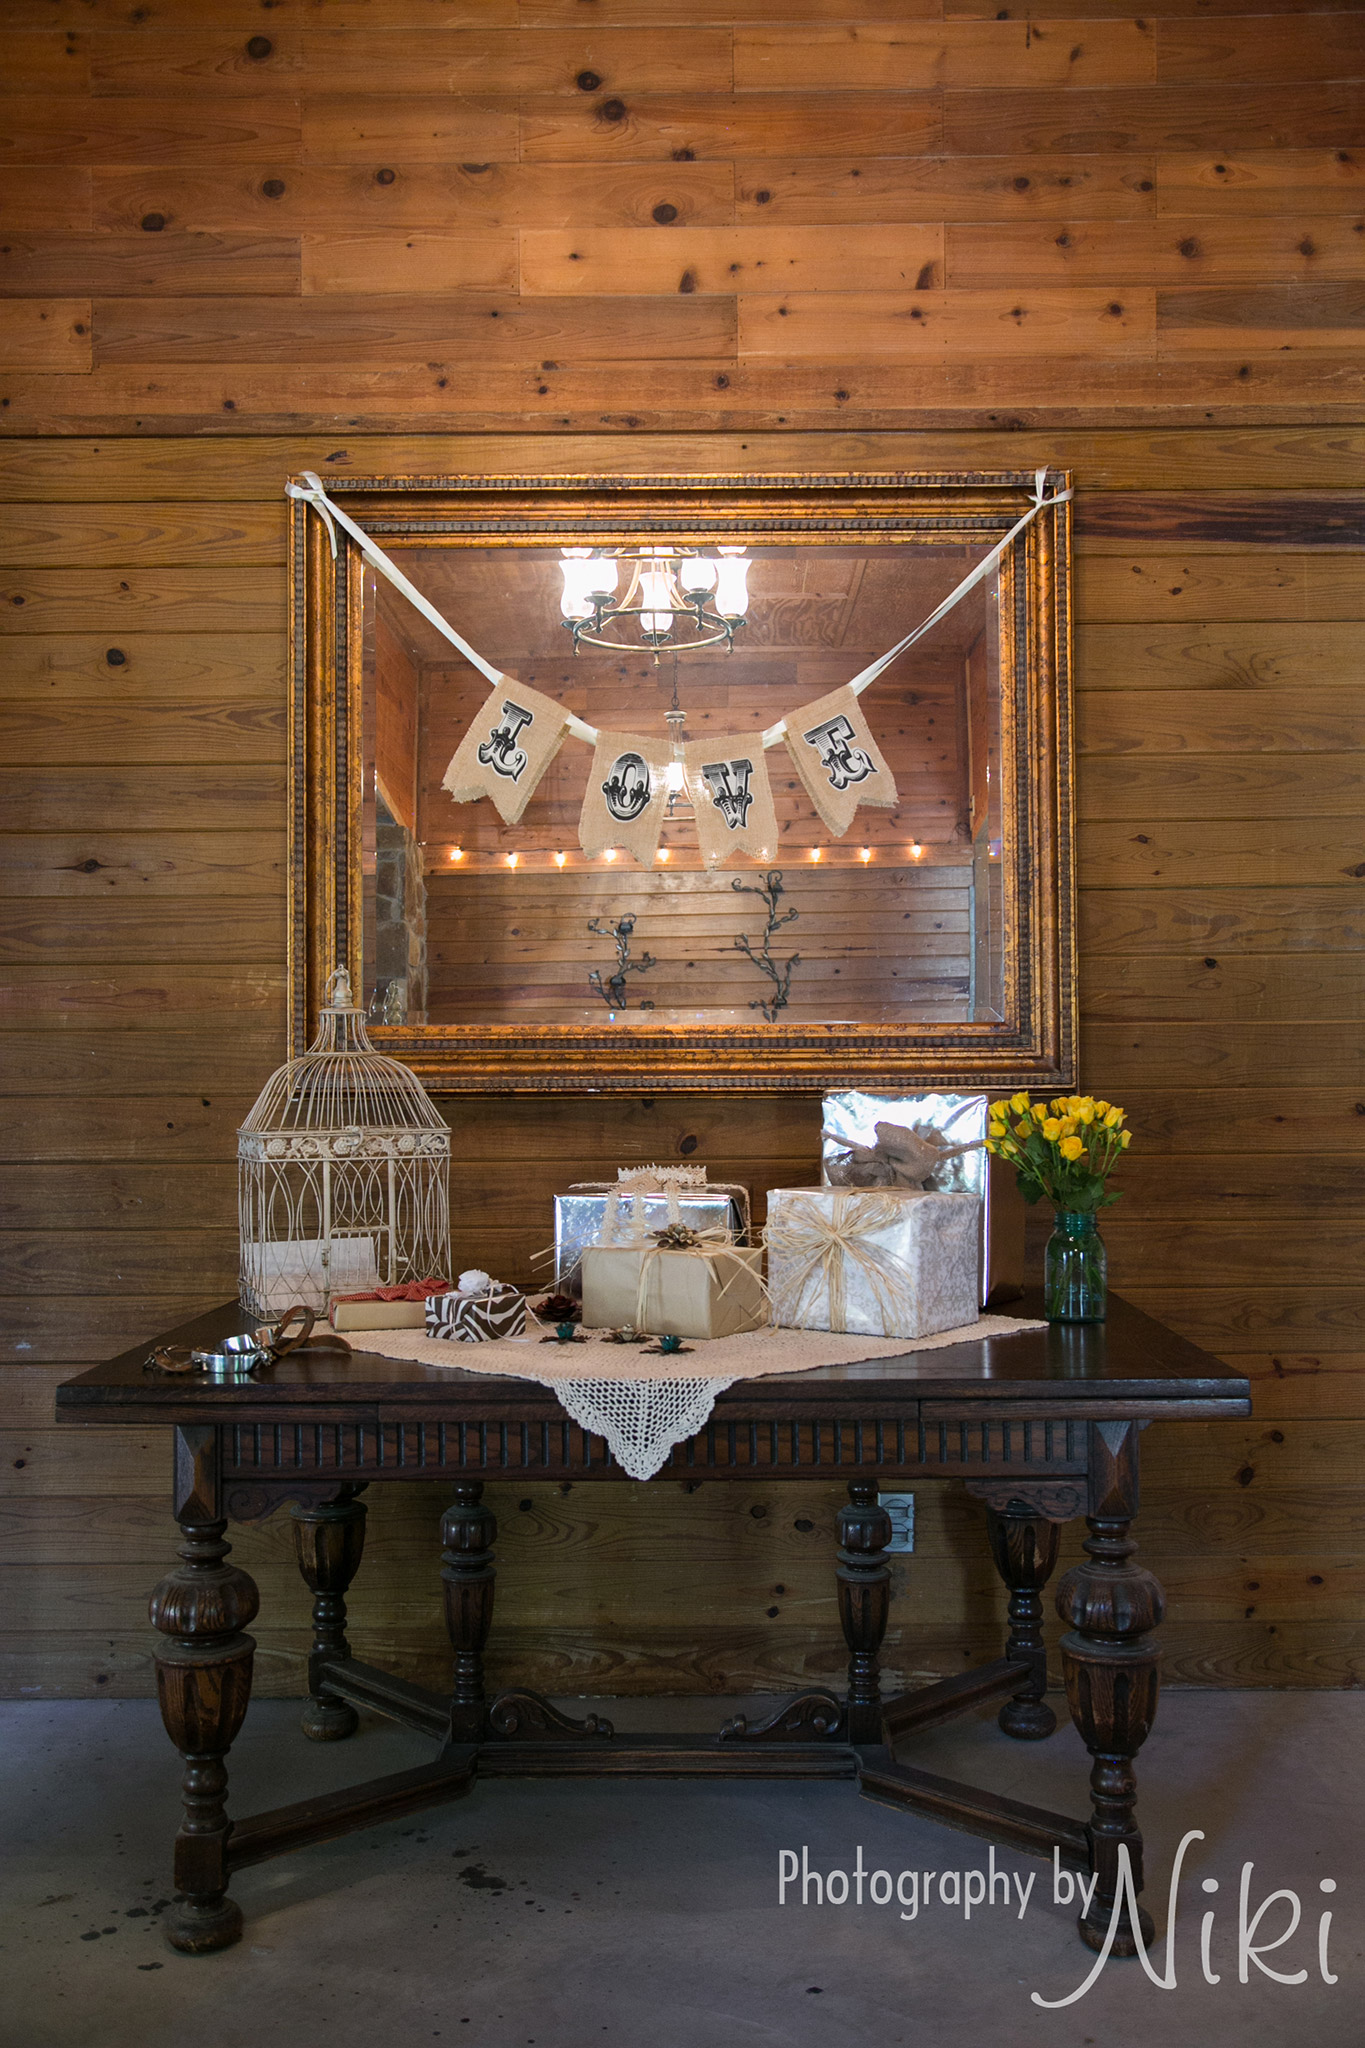 Decorated gift table with rustic charm located in the foyer.